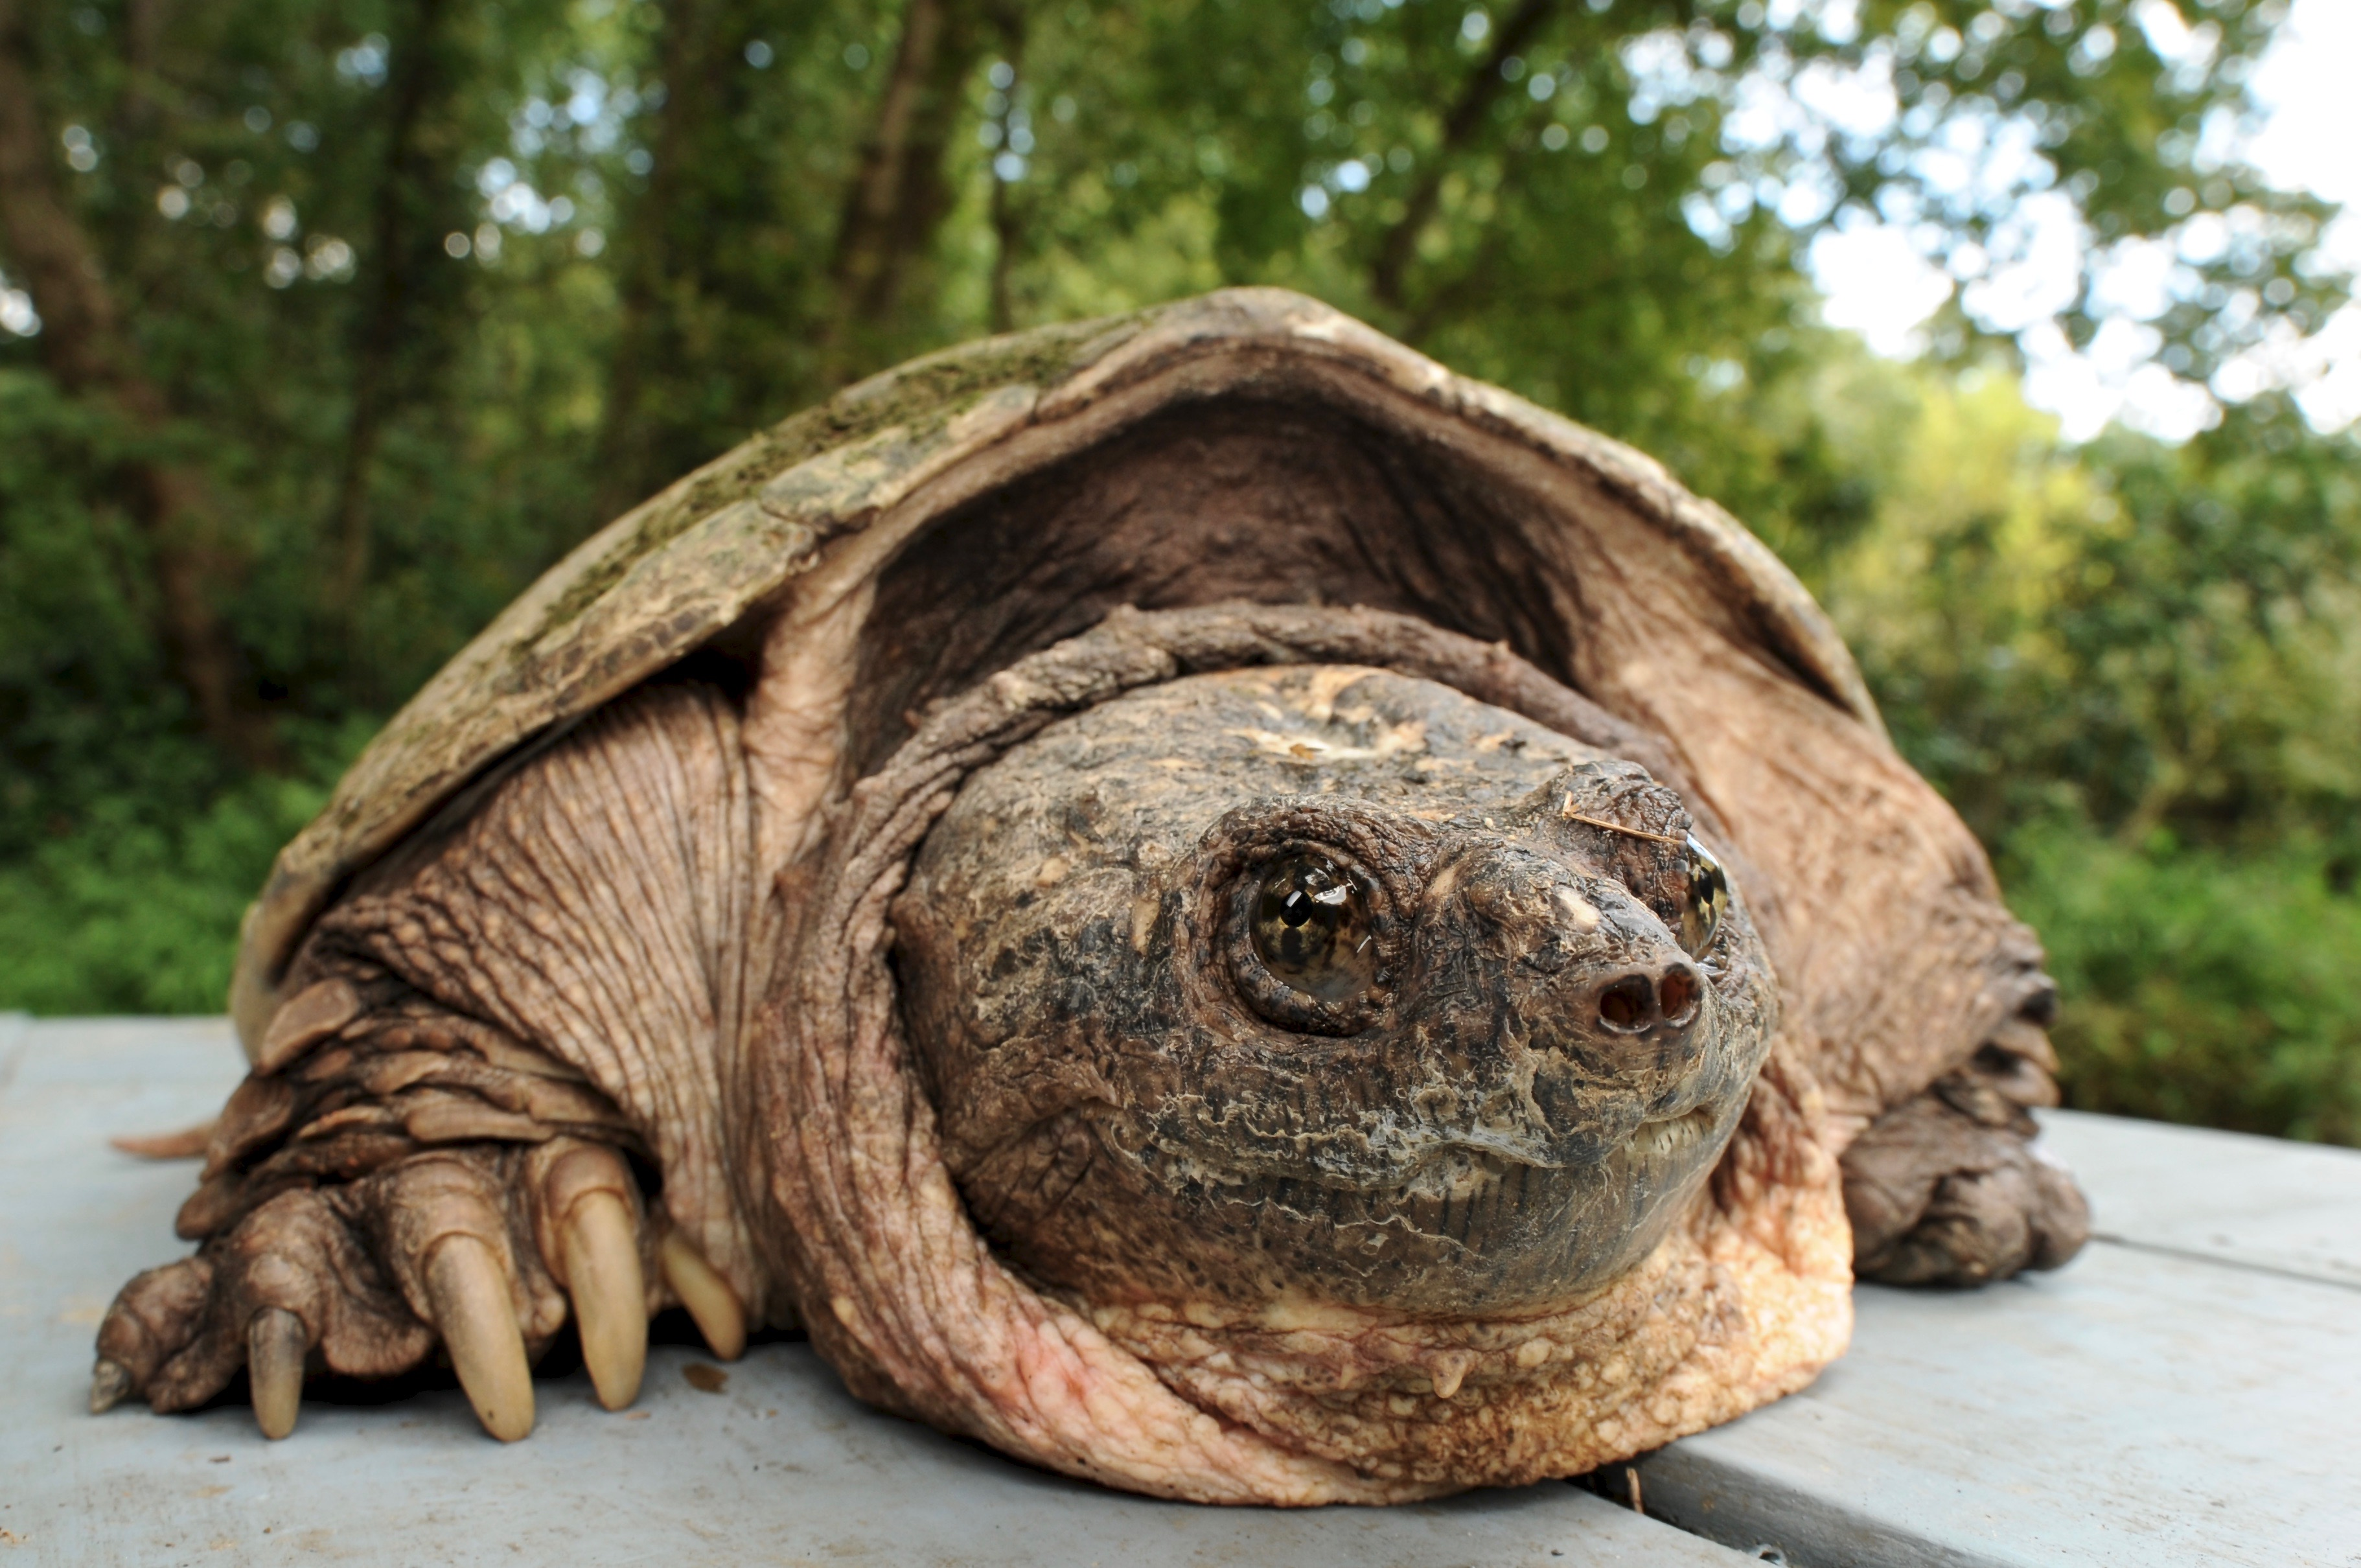 Common Snapping Turtle 130